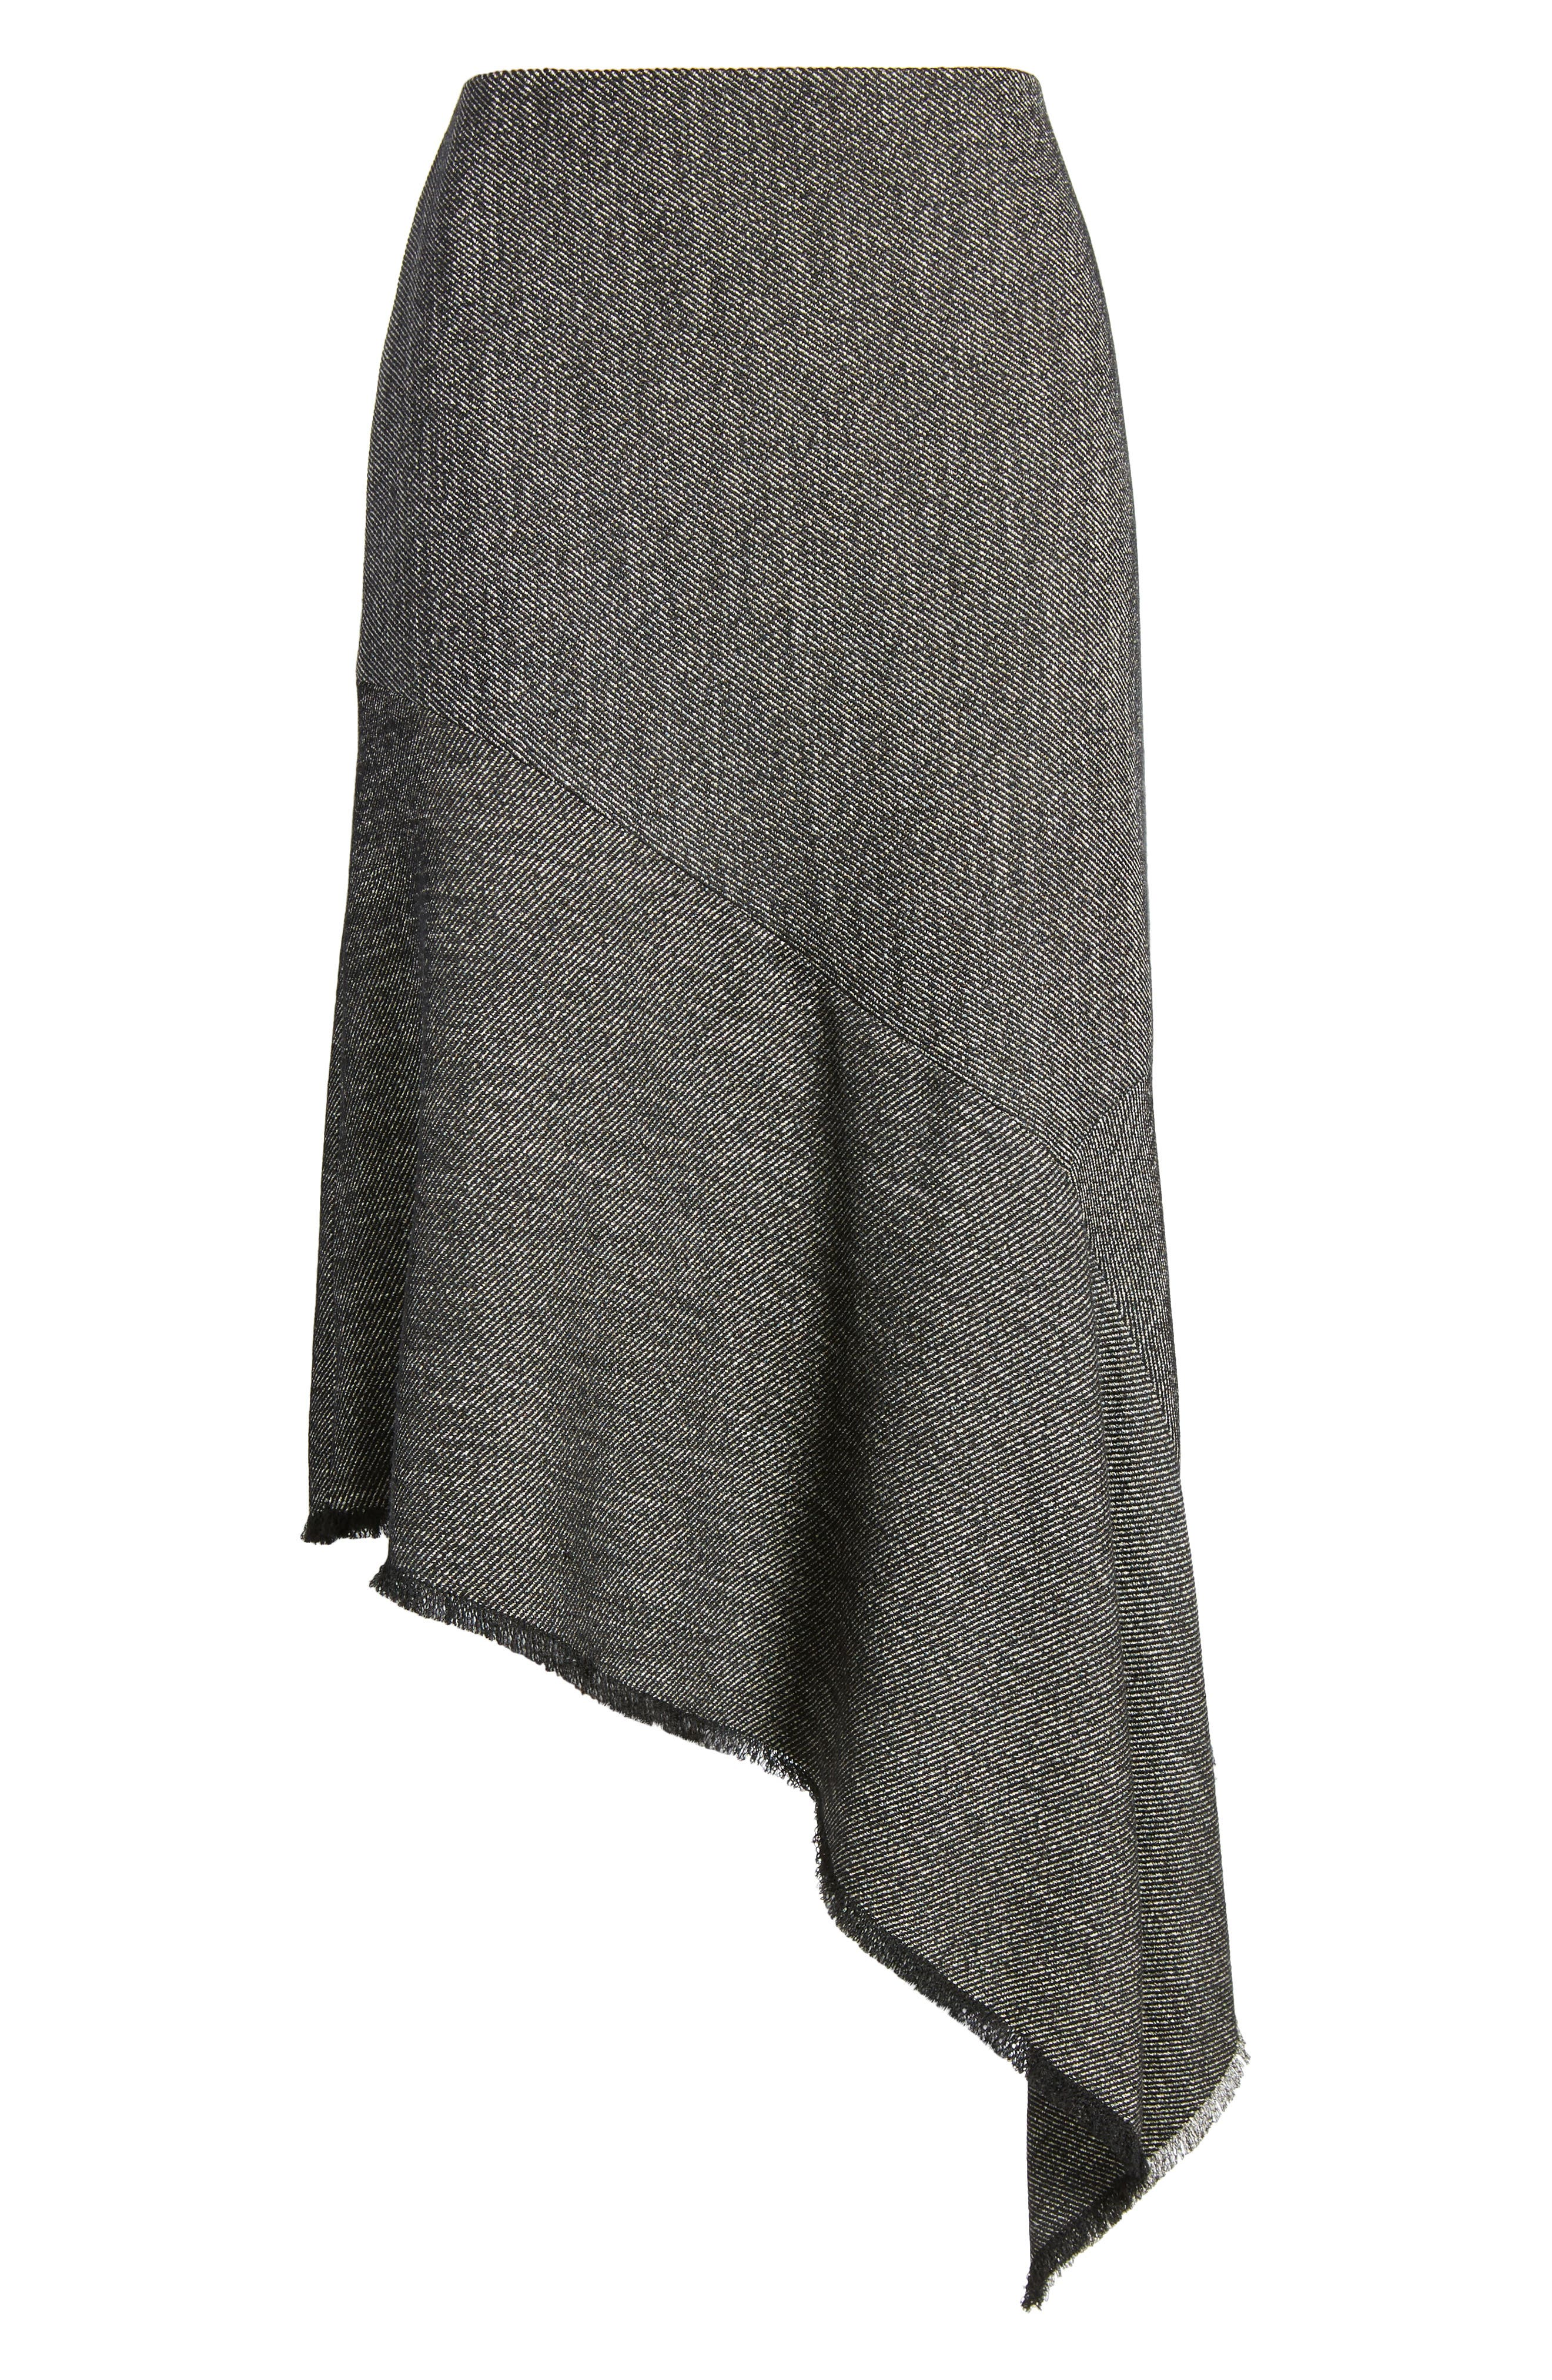 Asymmetrical Tweed Skirt,                             Alternate thumbnail 6, color,                             001